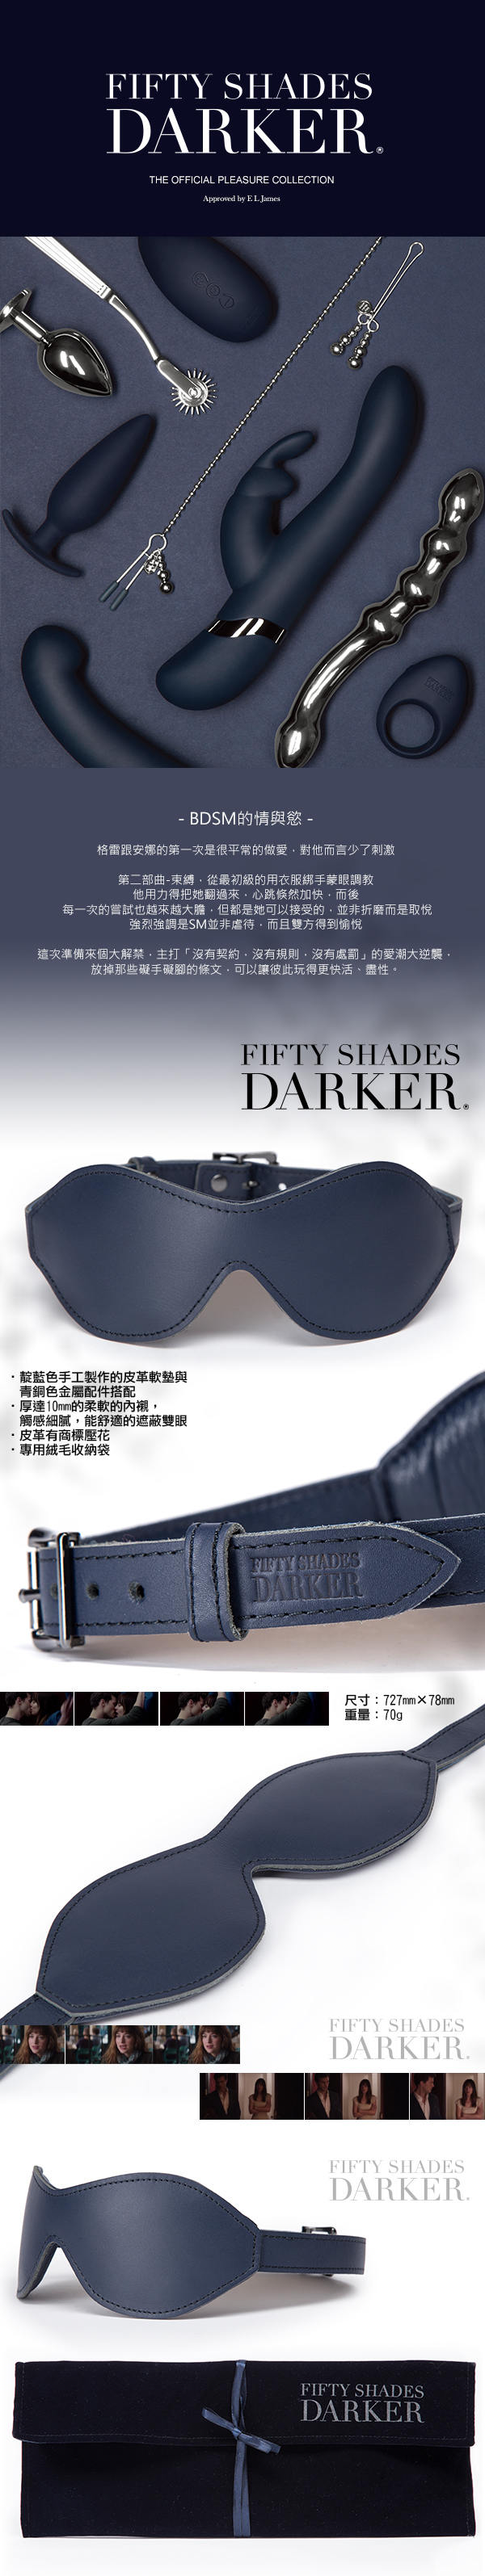 Fifty Shades Darker 格雷的五十道陰影2-束縛 支配者 遮蔽眼罩